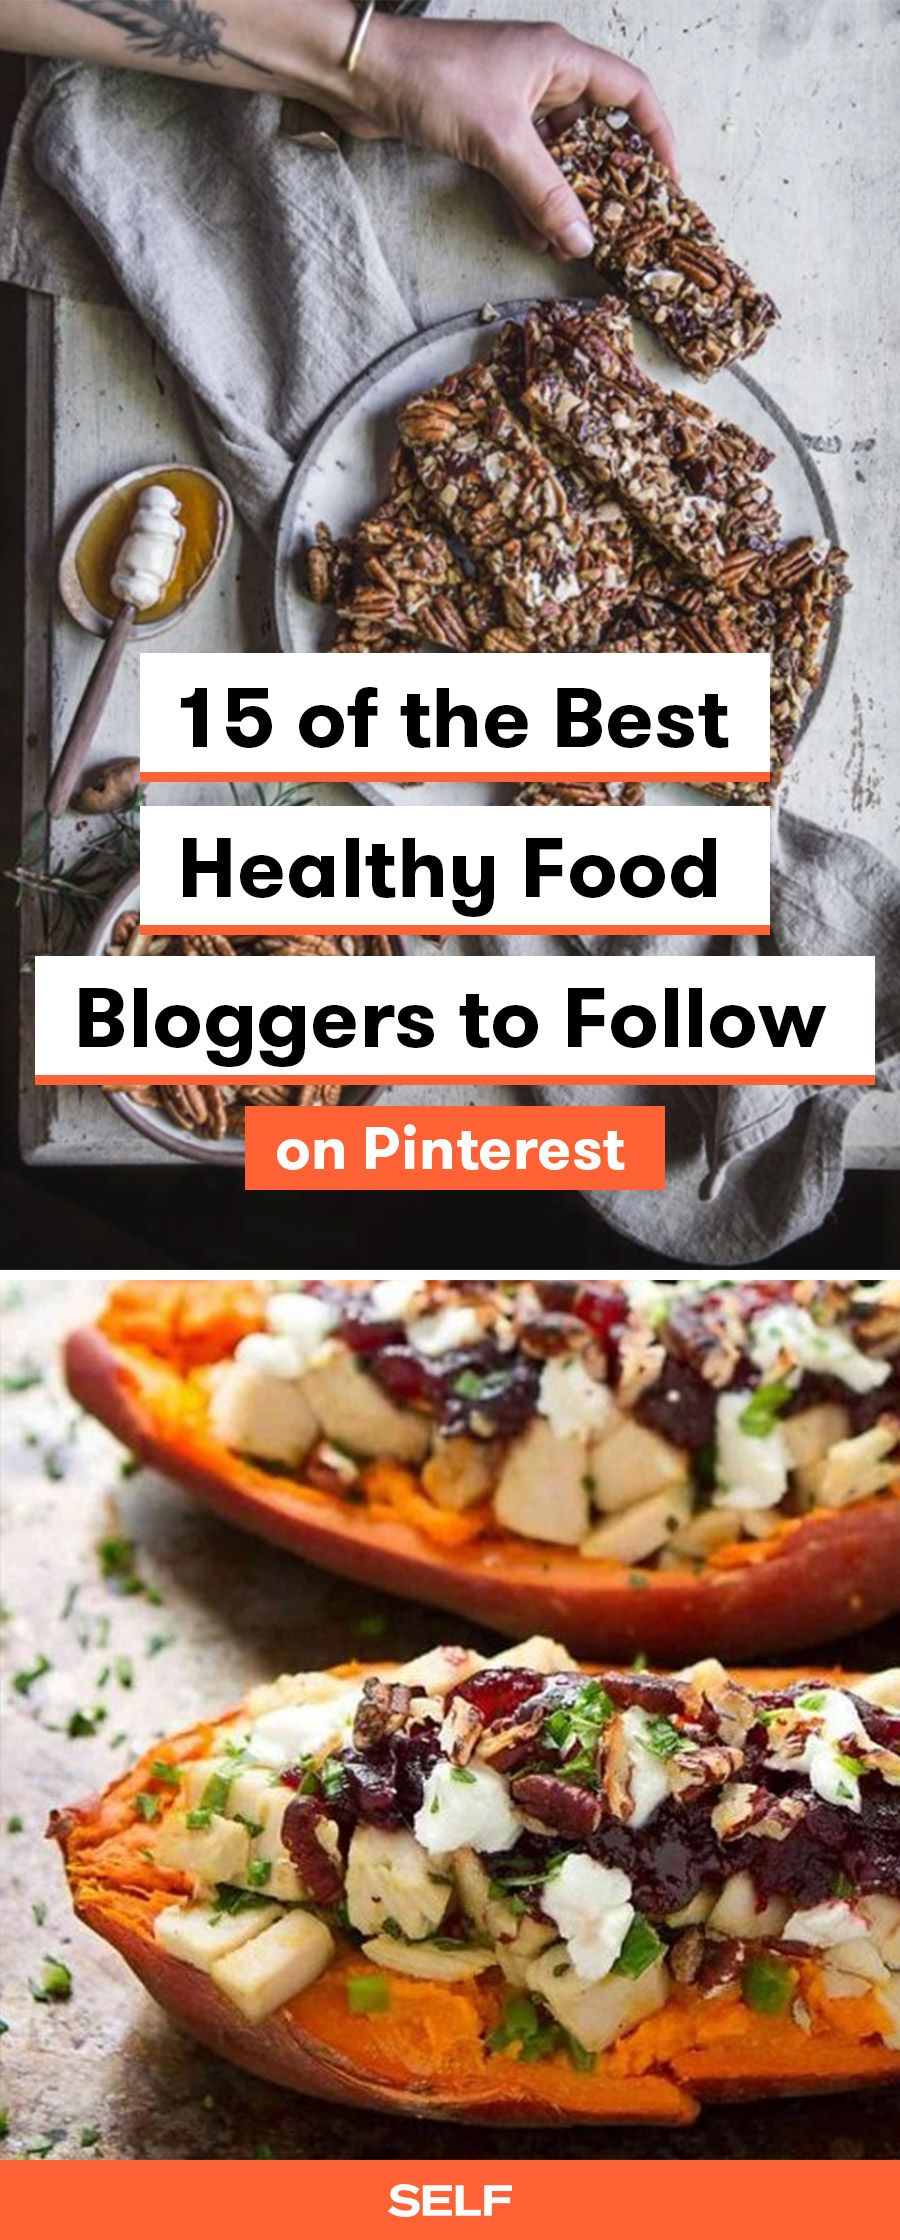 15 of the best healthy food bloggers to follow on pinterest 15 of the best healthy food bloggers to follow on pinterest forumfinder Image collections